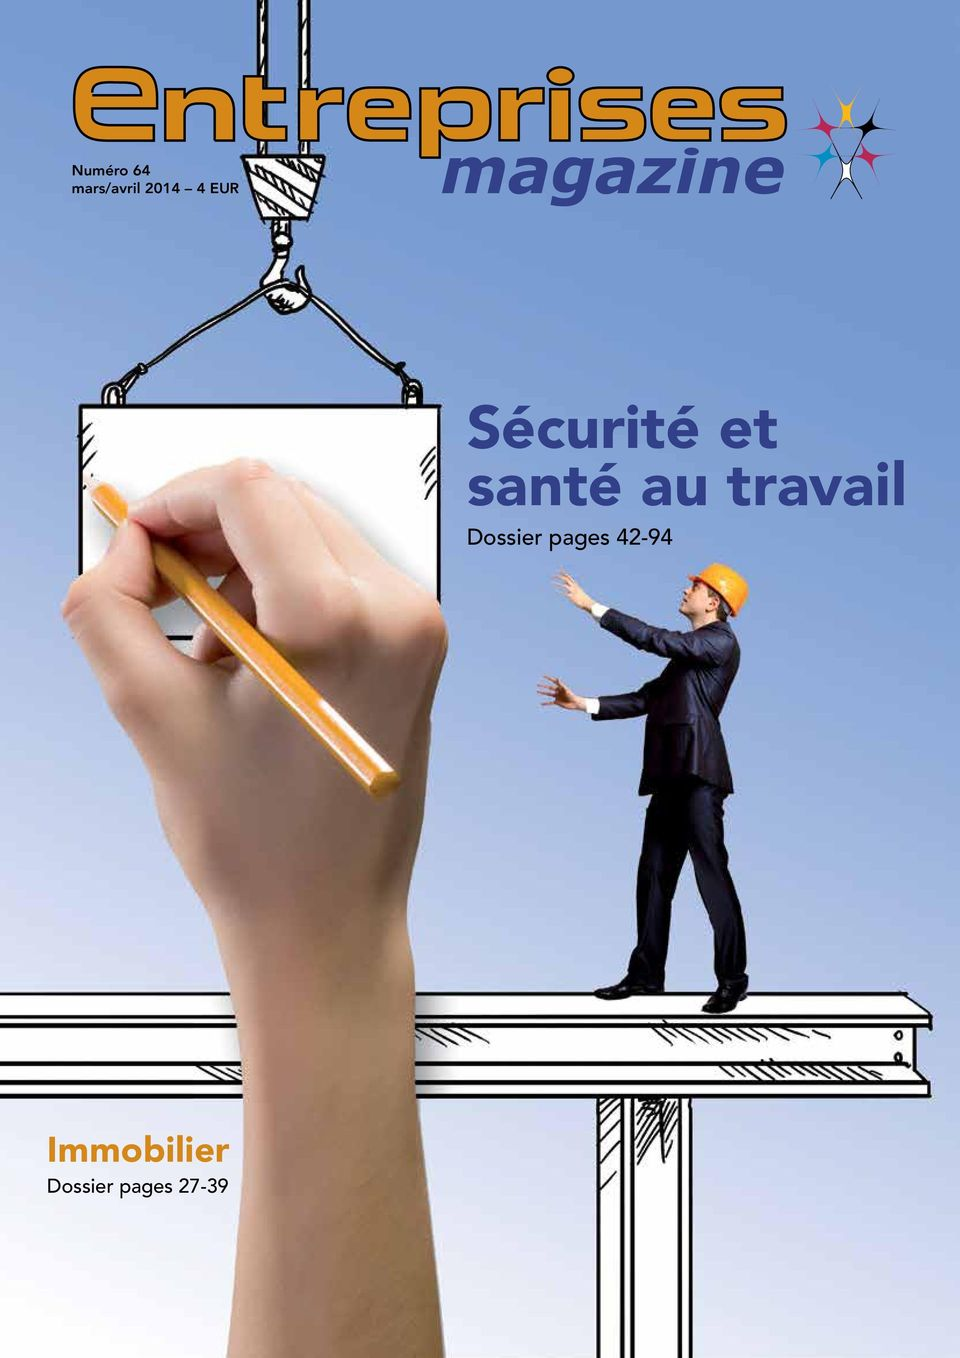 Dossier pages 42-94 Immobilier